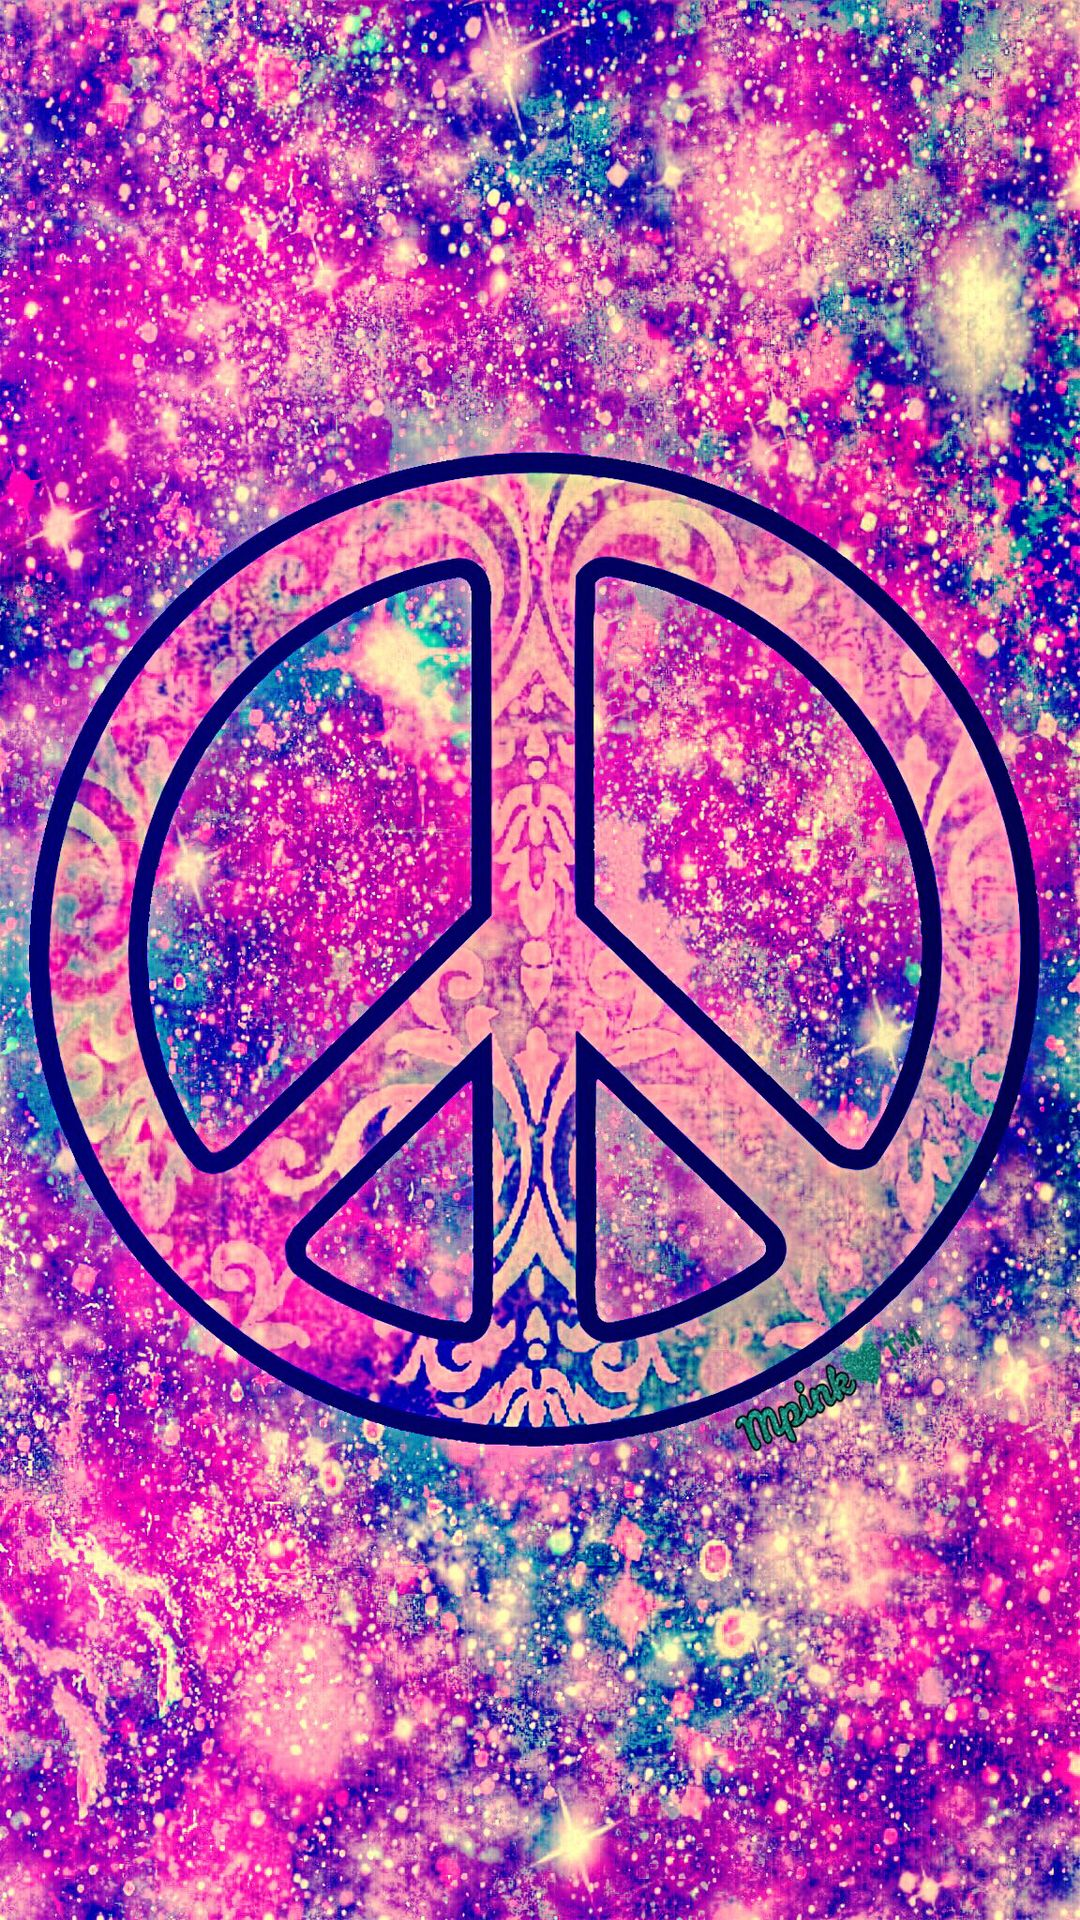 Vintage Peace Sign Galaxy Wallpaper androidwallpaper